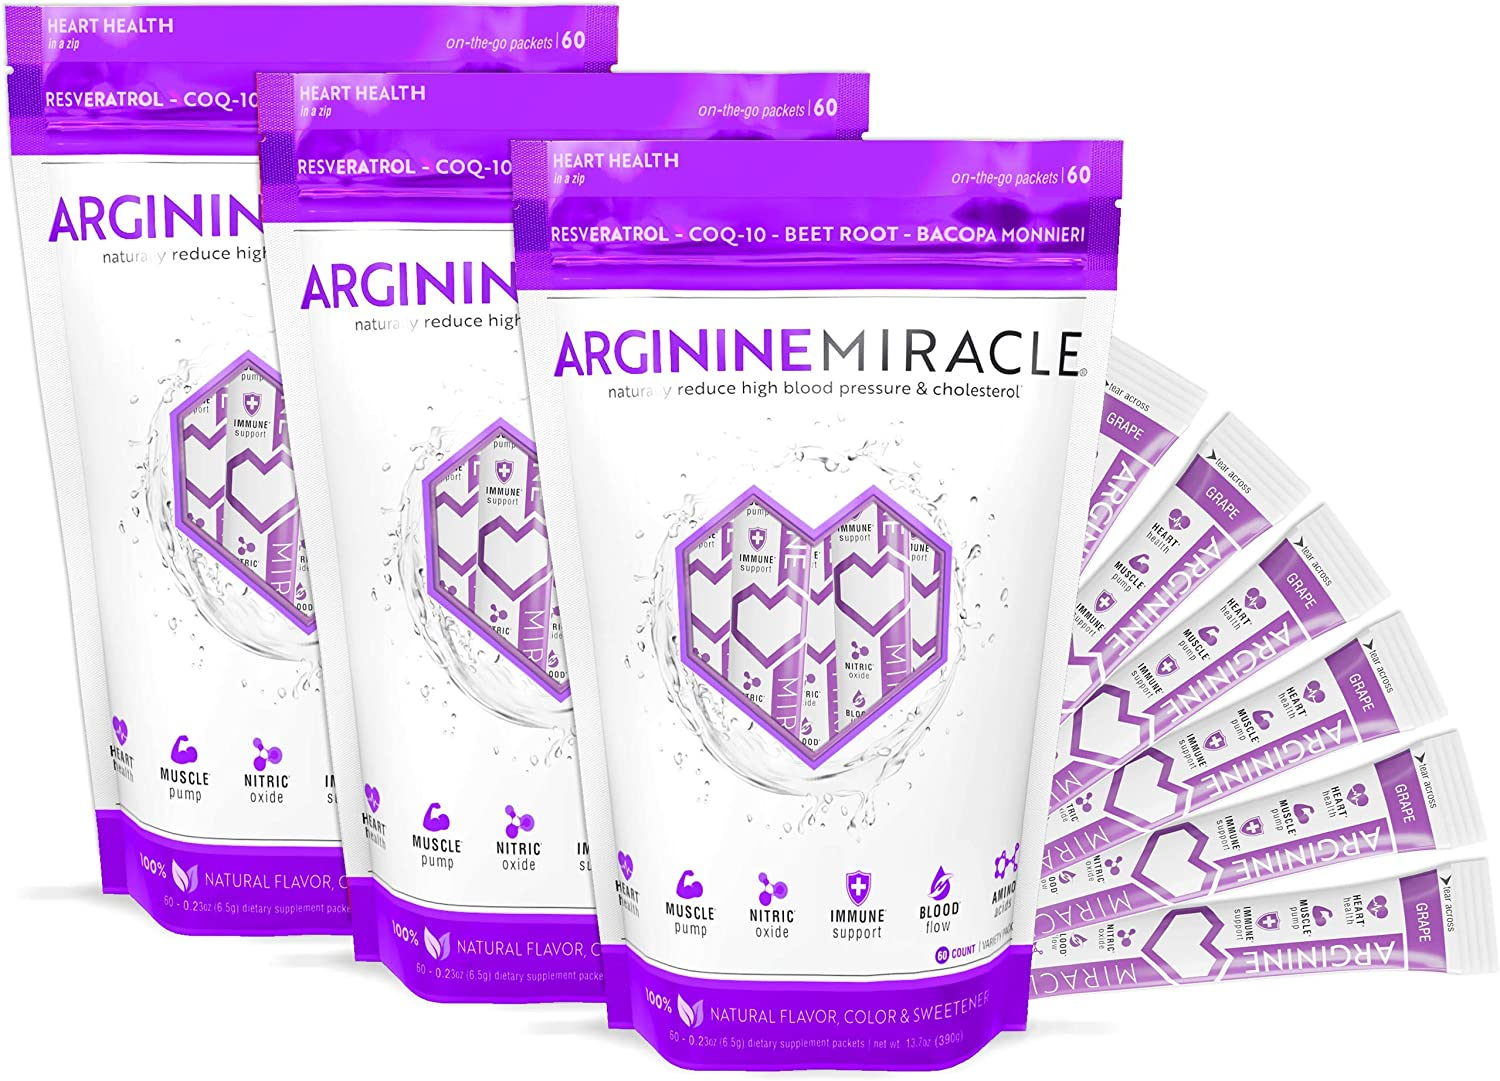 Arginine Miracle Nitric Oxide Support to 店 He Booster 通販